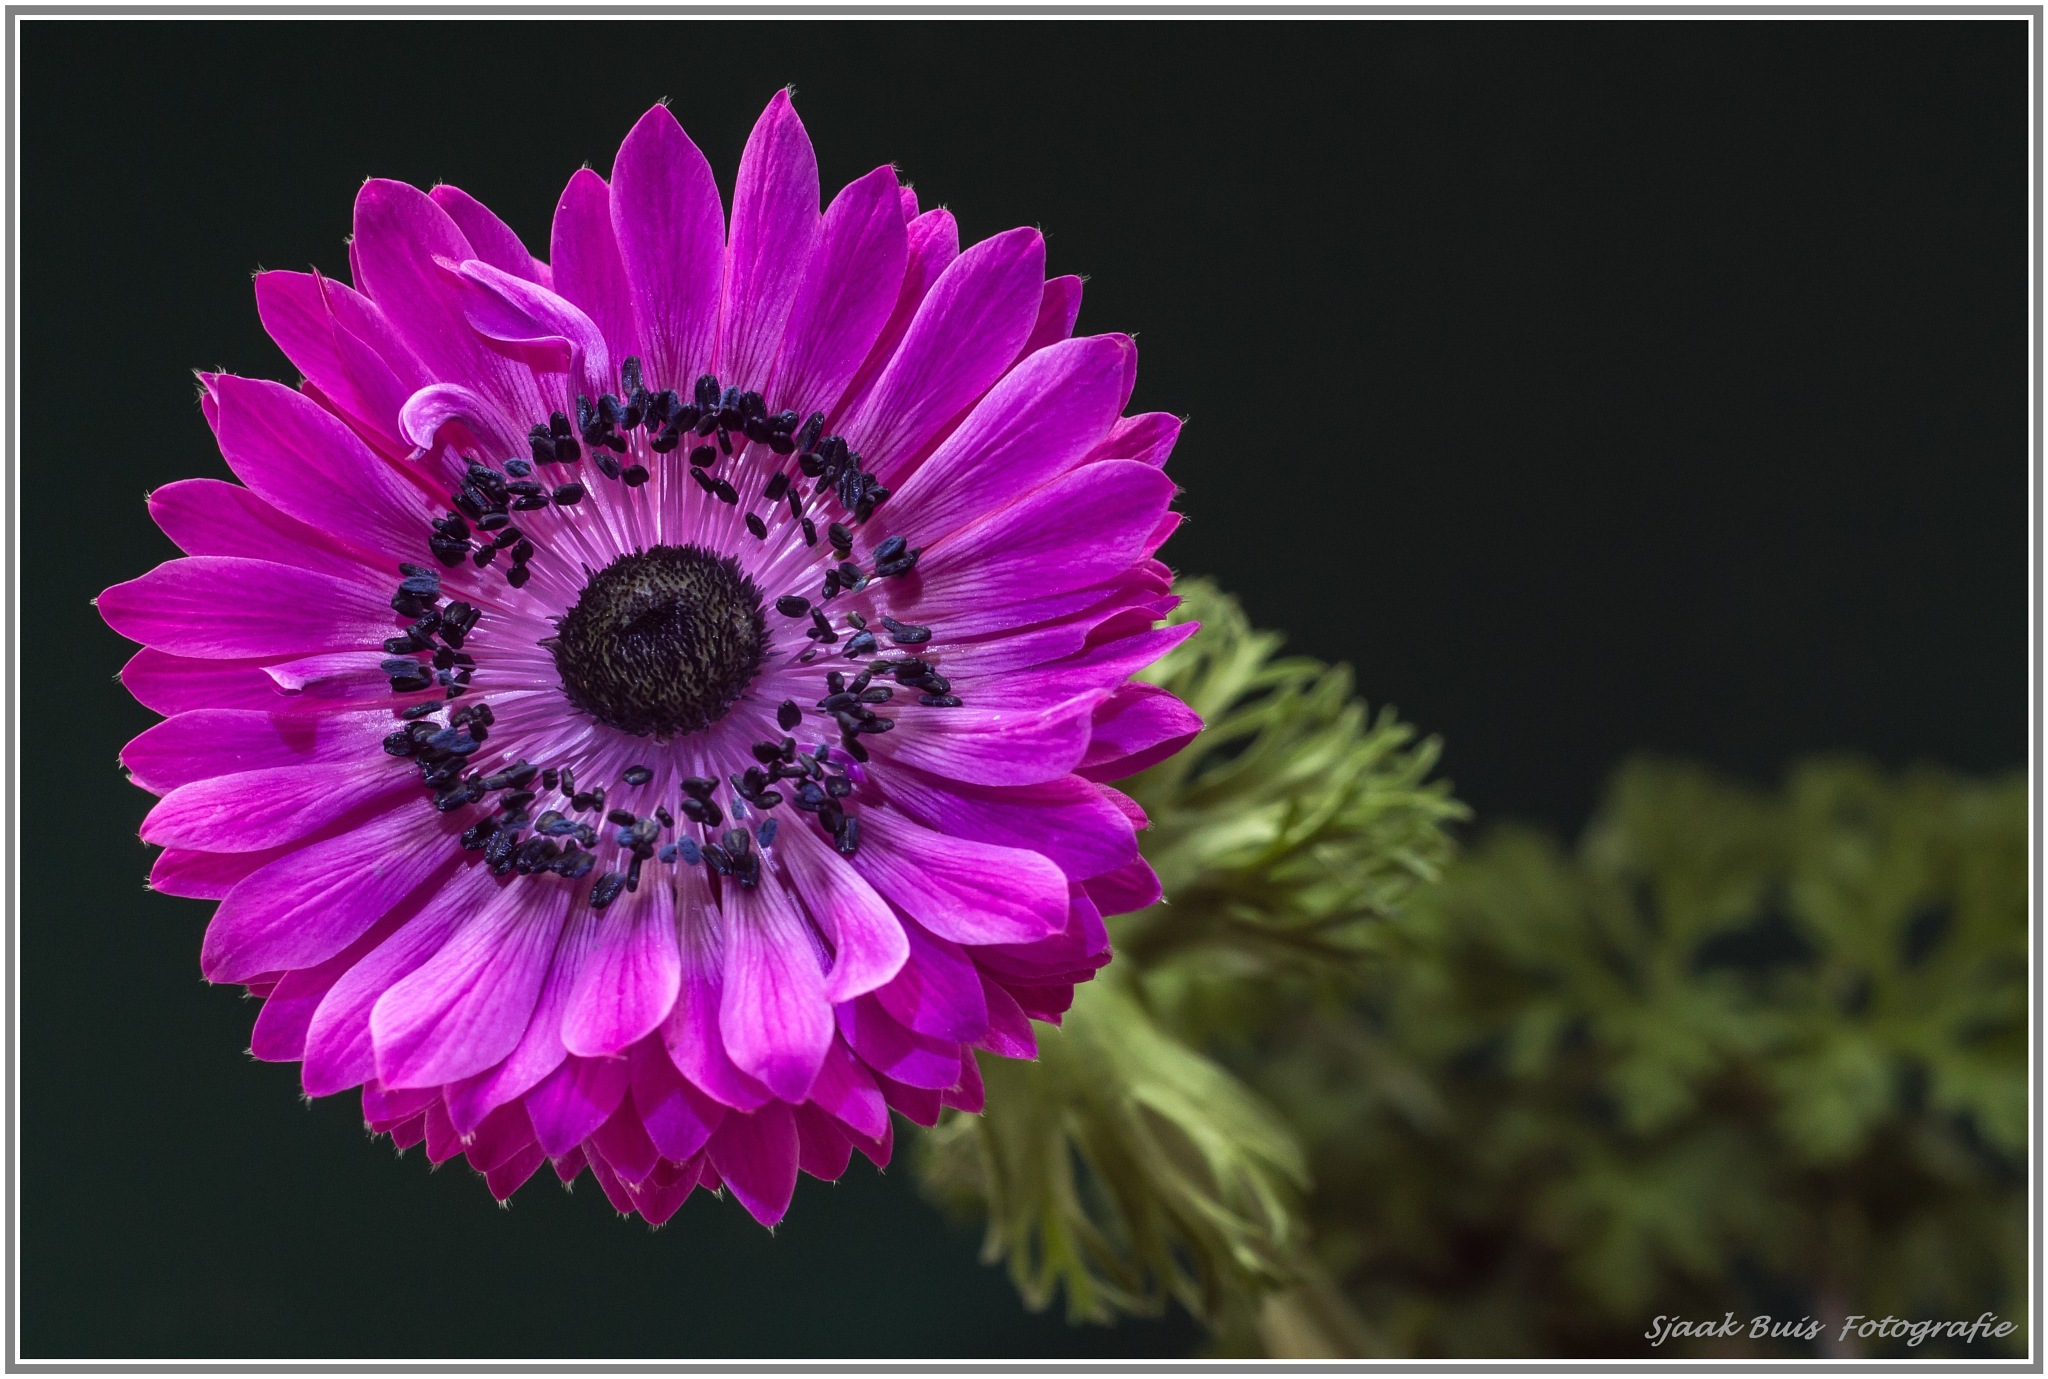 The Anemone by Sjaak Buis